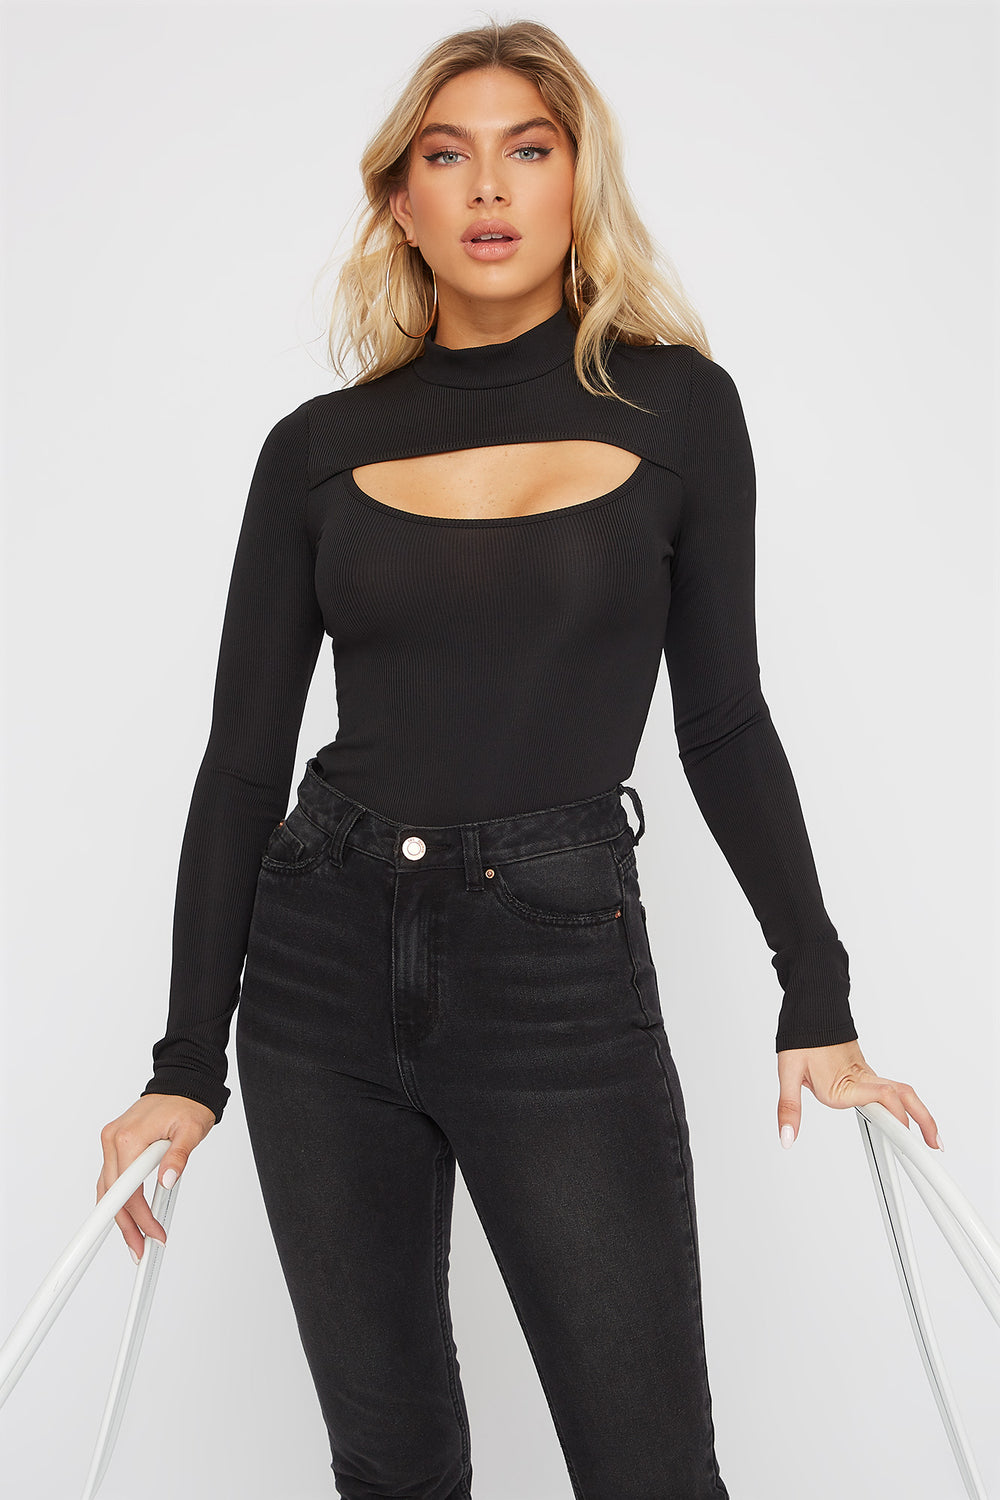 Ribbed Mock Neck Cut Out Long Sleeve Bodysuit Black